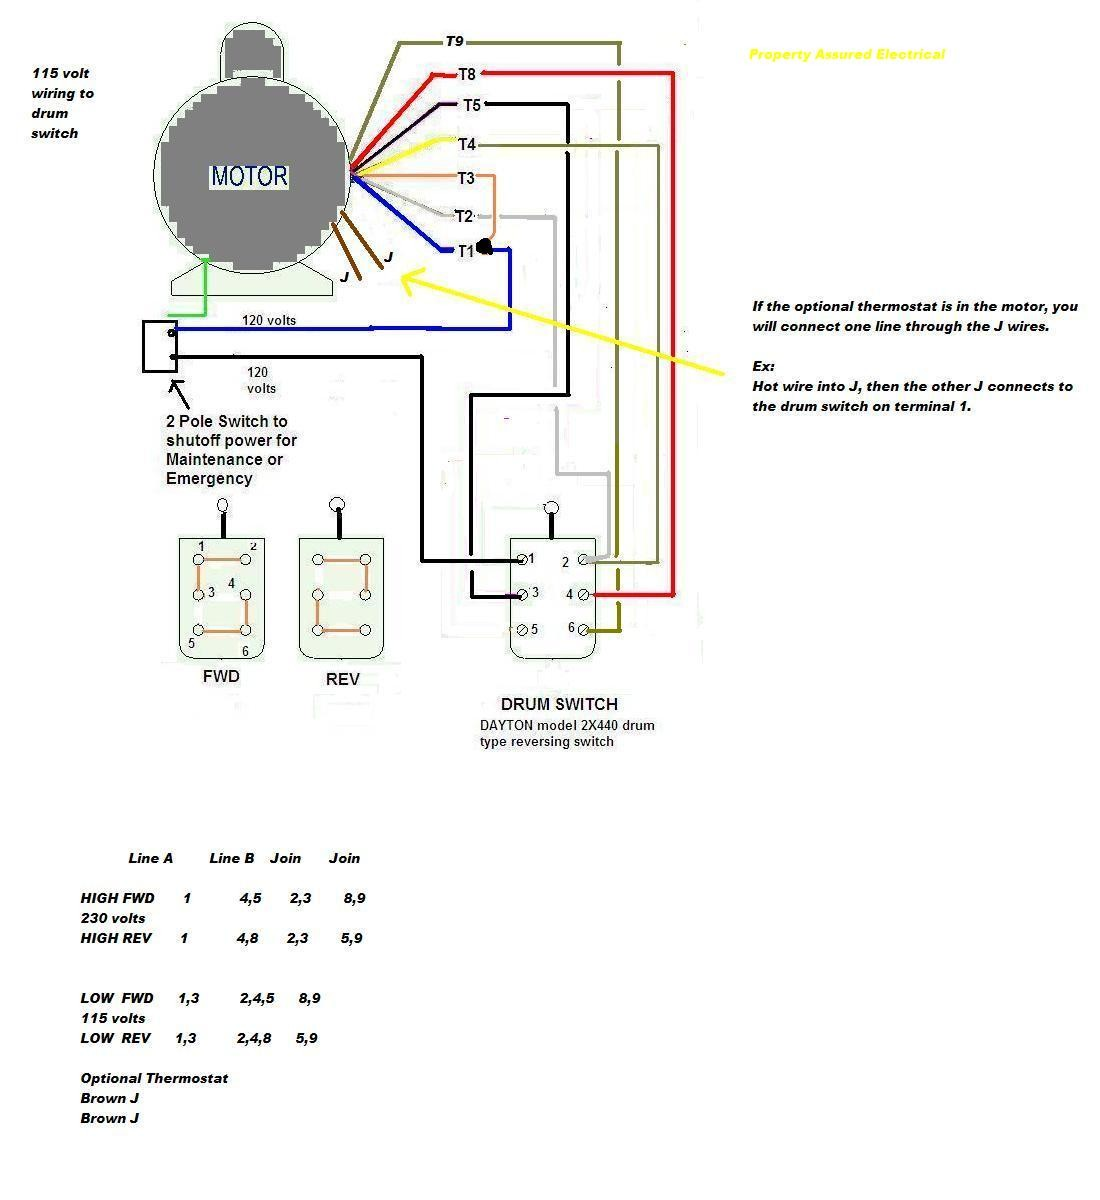 Wiring Diagram Baldor Motor Diagrams 3 Phase 9 Wire Best 208V 8